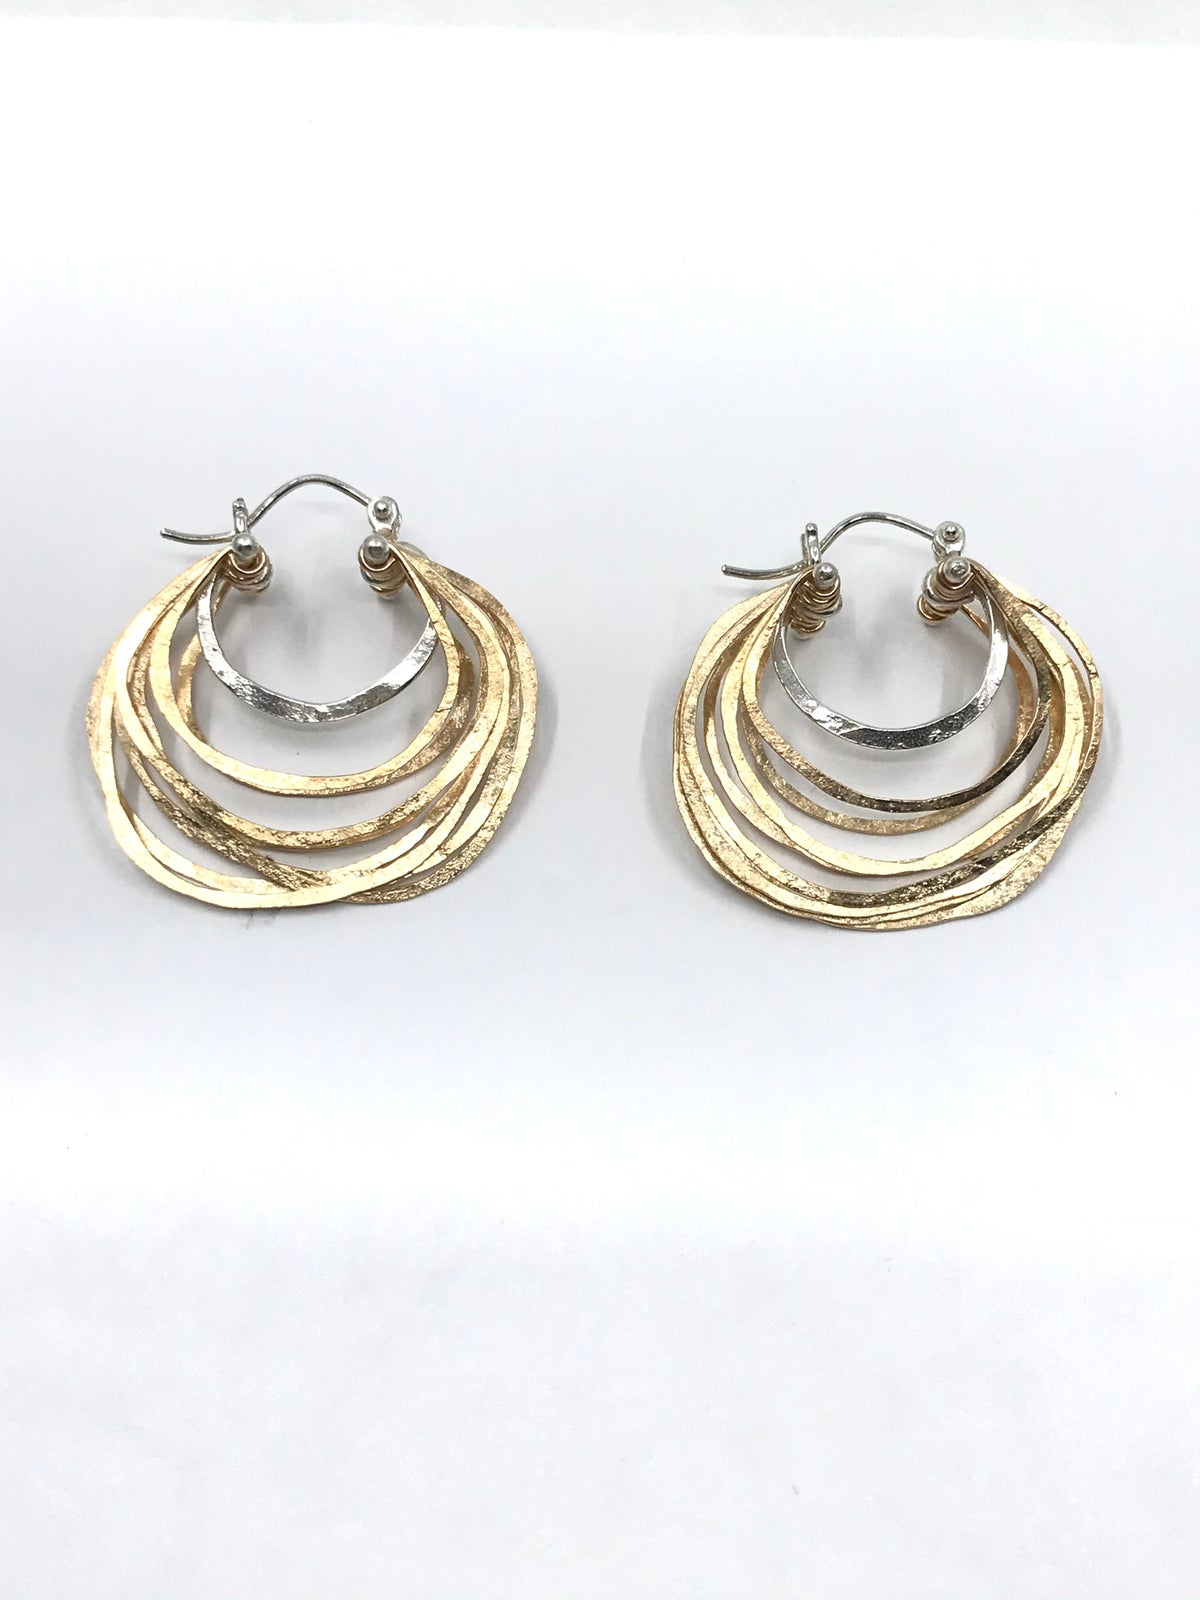 Gold Layered Earrings by Leia Zumbro